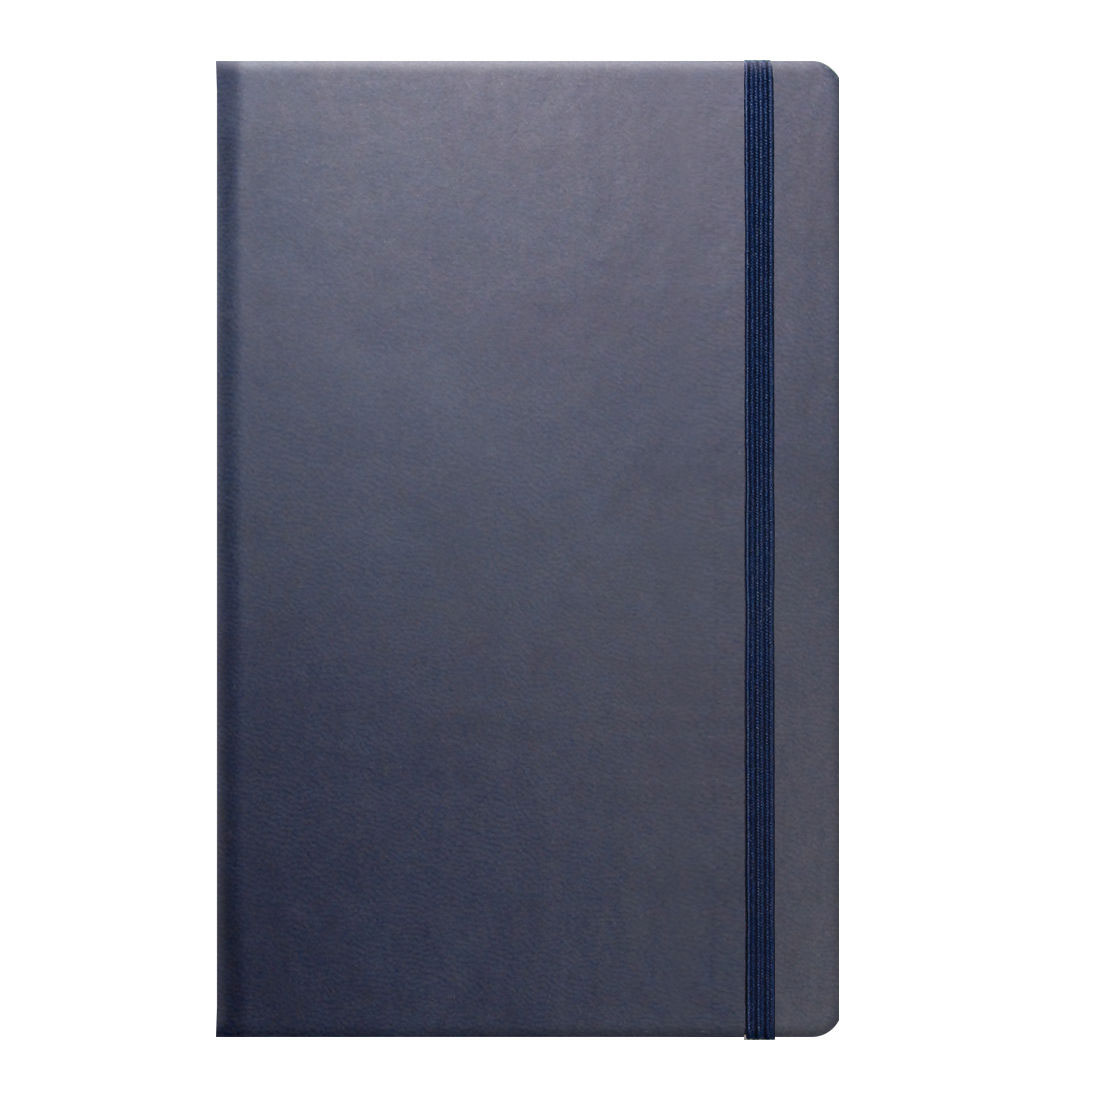 Bookaroo Notebook Range - Reflexa Notebook - Grey